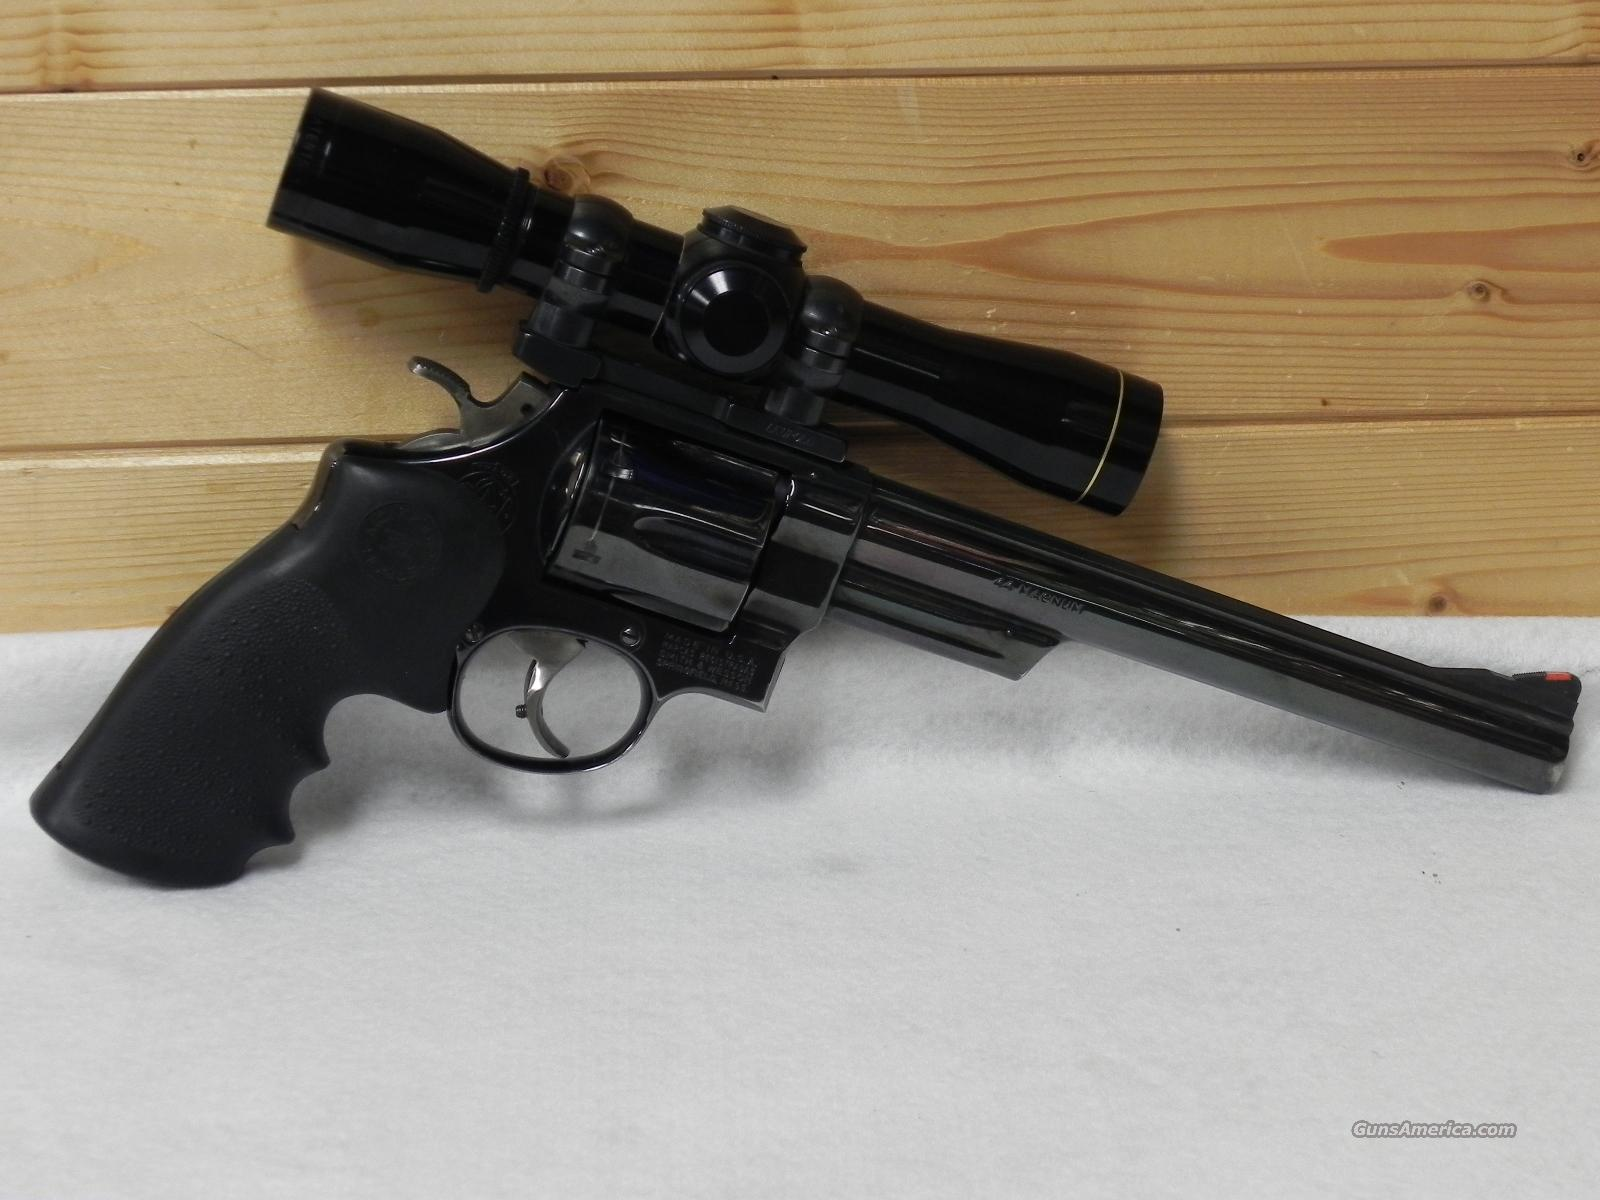 Smith & Wesson model 29  44 mag  Guns > Pistols > Smith & Wesson Revolvers > Full Frame Revolver